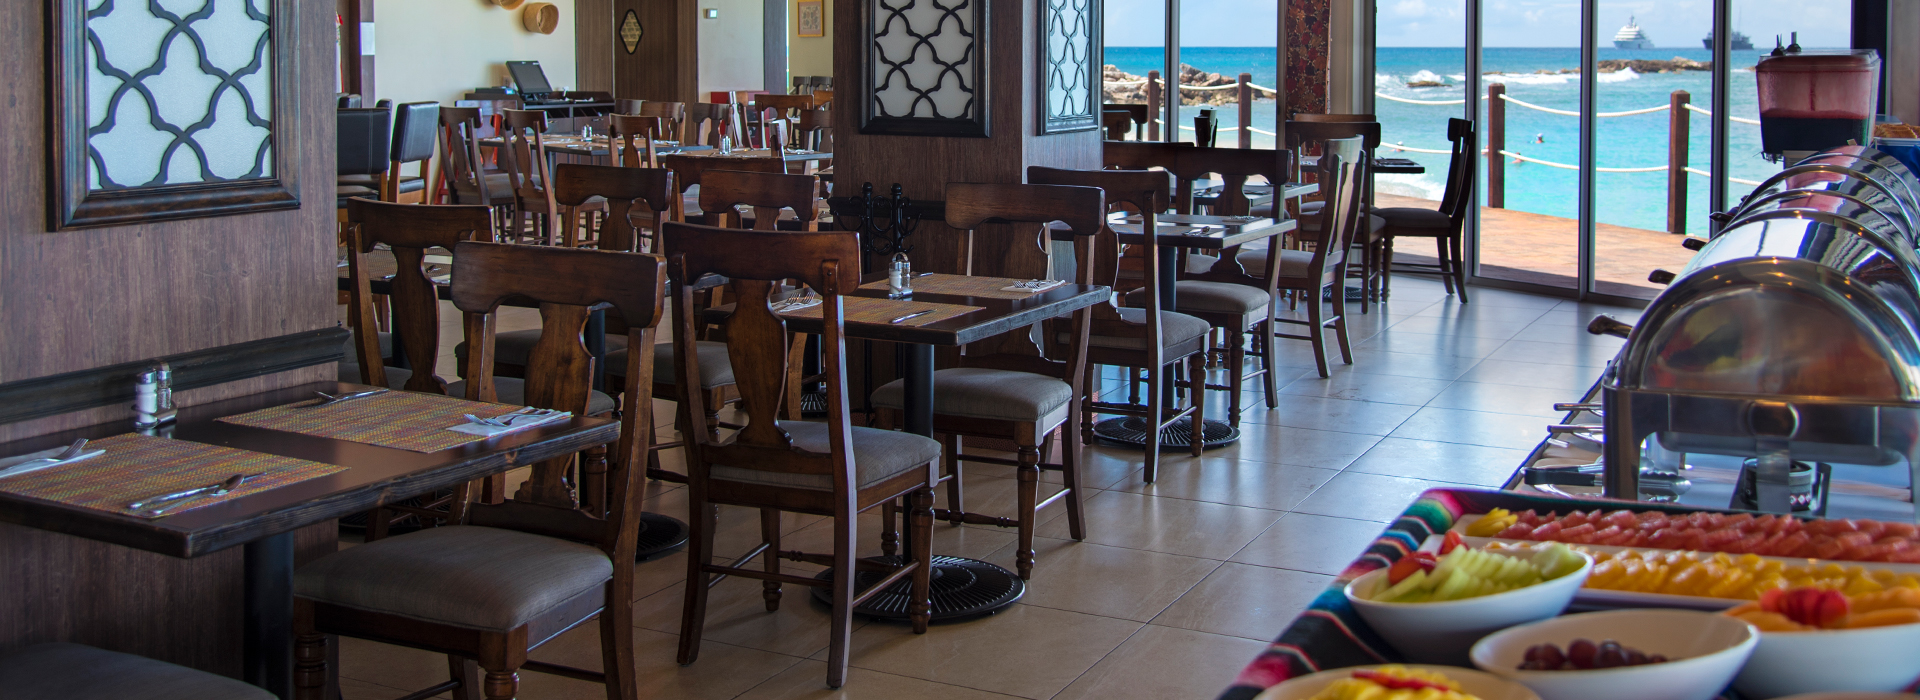 caribbean family resorts restaurants